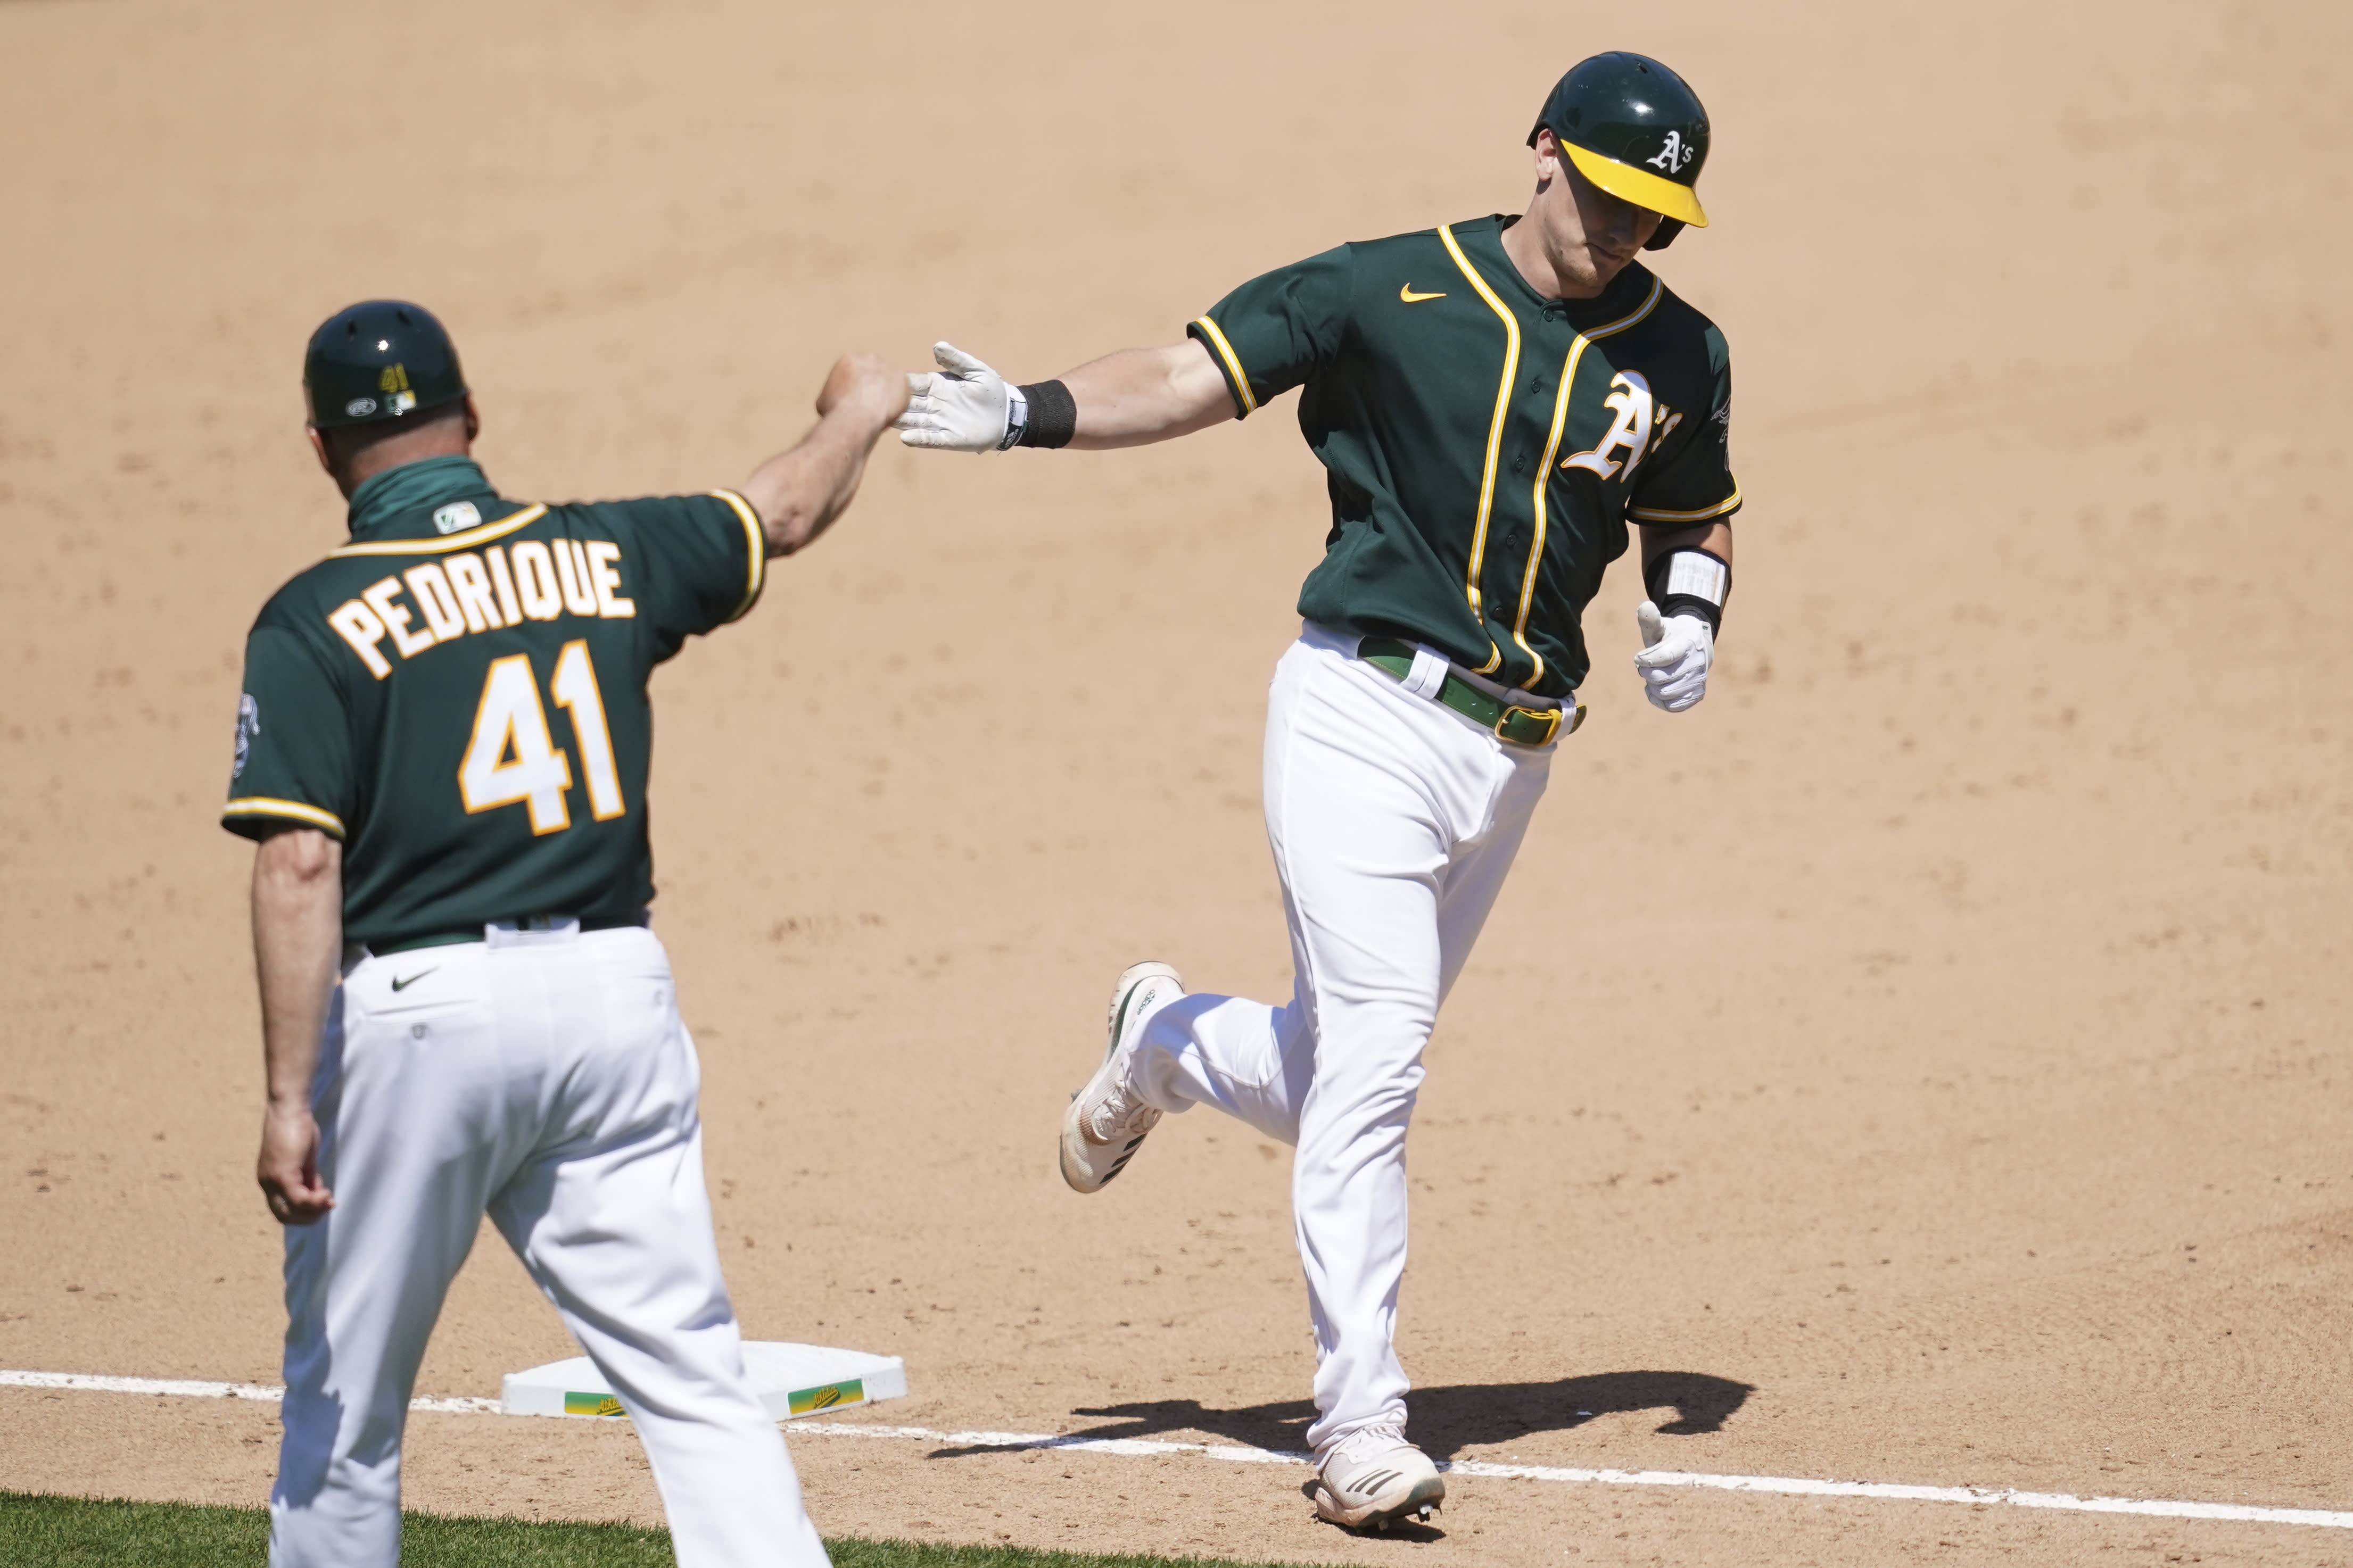 Oakland Athletics' Sean Murphy, right, is congratulated by third base coach Al Pedrique after hitting a solo home run against the Los Angeles Angels during the sixth inning of a baseball game in Oakland, Calif., Sunday, July 26, 2020. (AP Photo/Jeff Chiu)